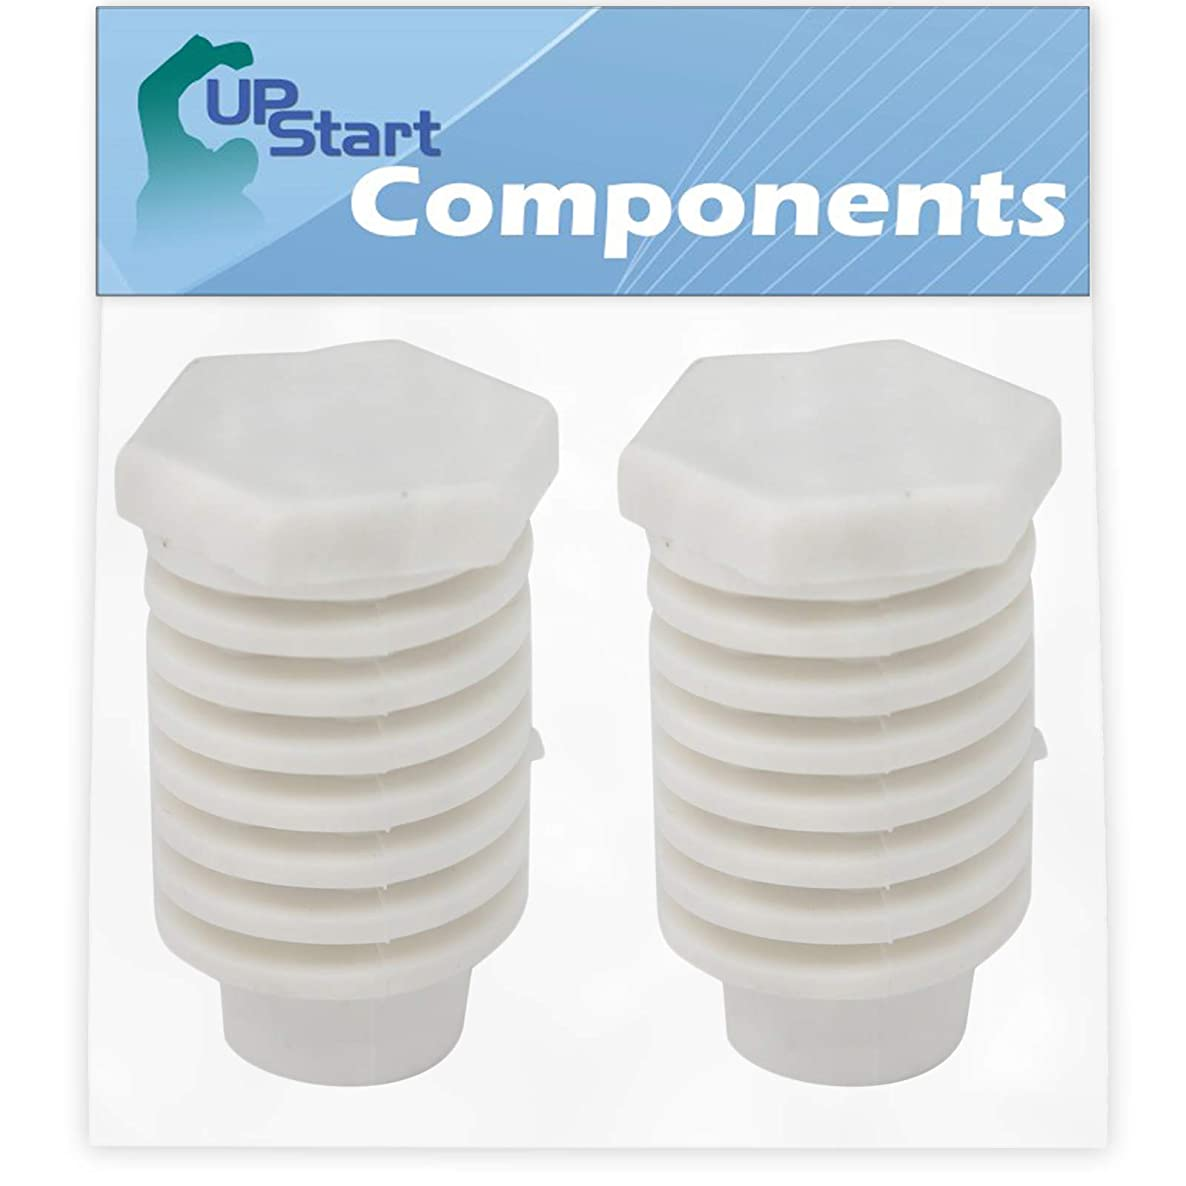 2-Pack 49621 Leveling Foot Replacement for Maytag YMED7000XW1 Dryer - Compatible with 49621 Dryer Leveling Leg Foot - UpStart Components Brand